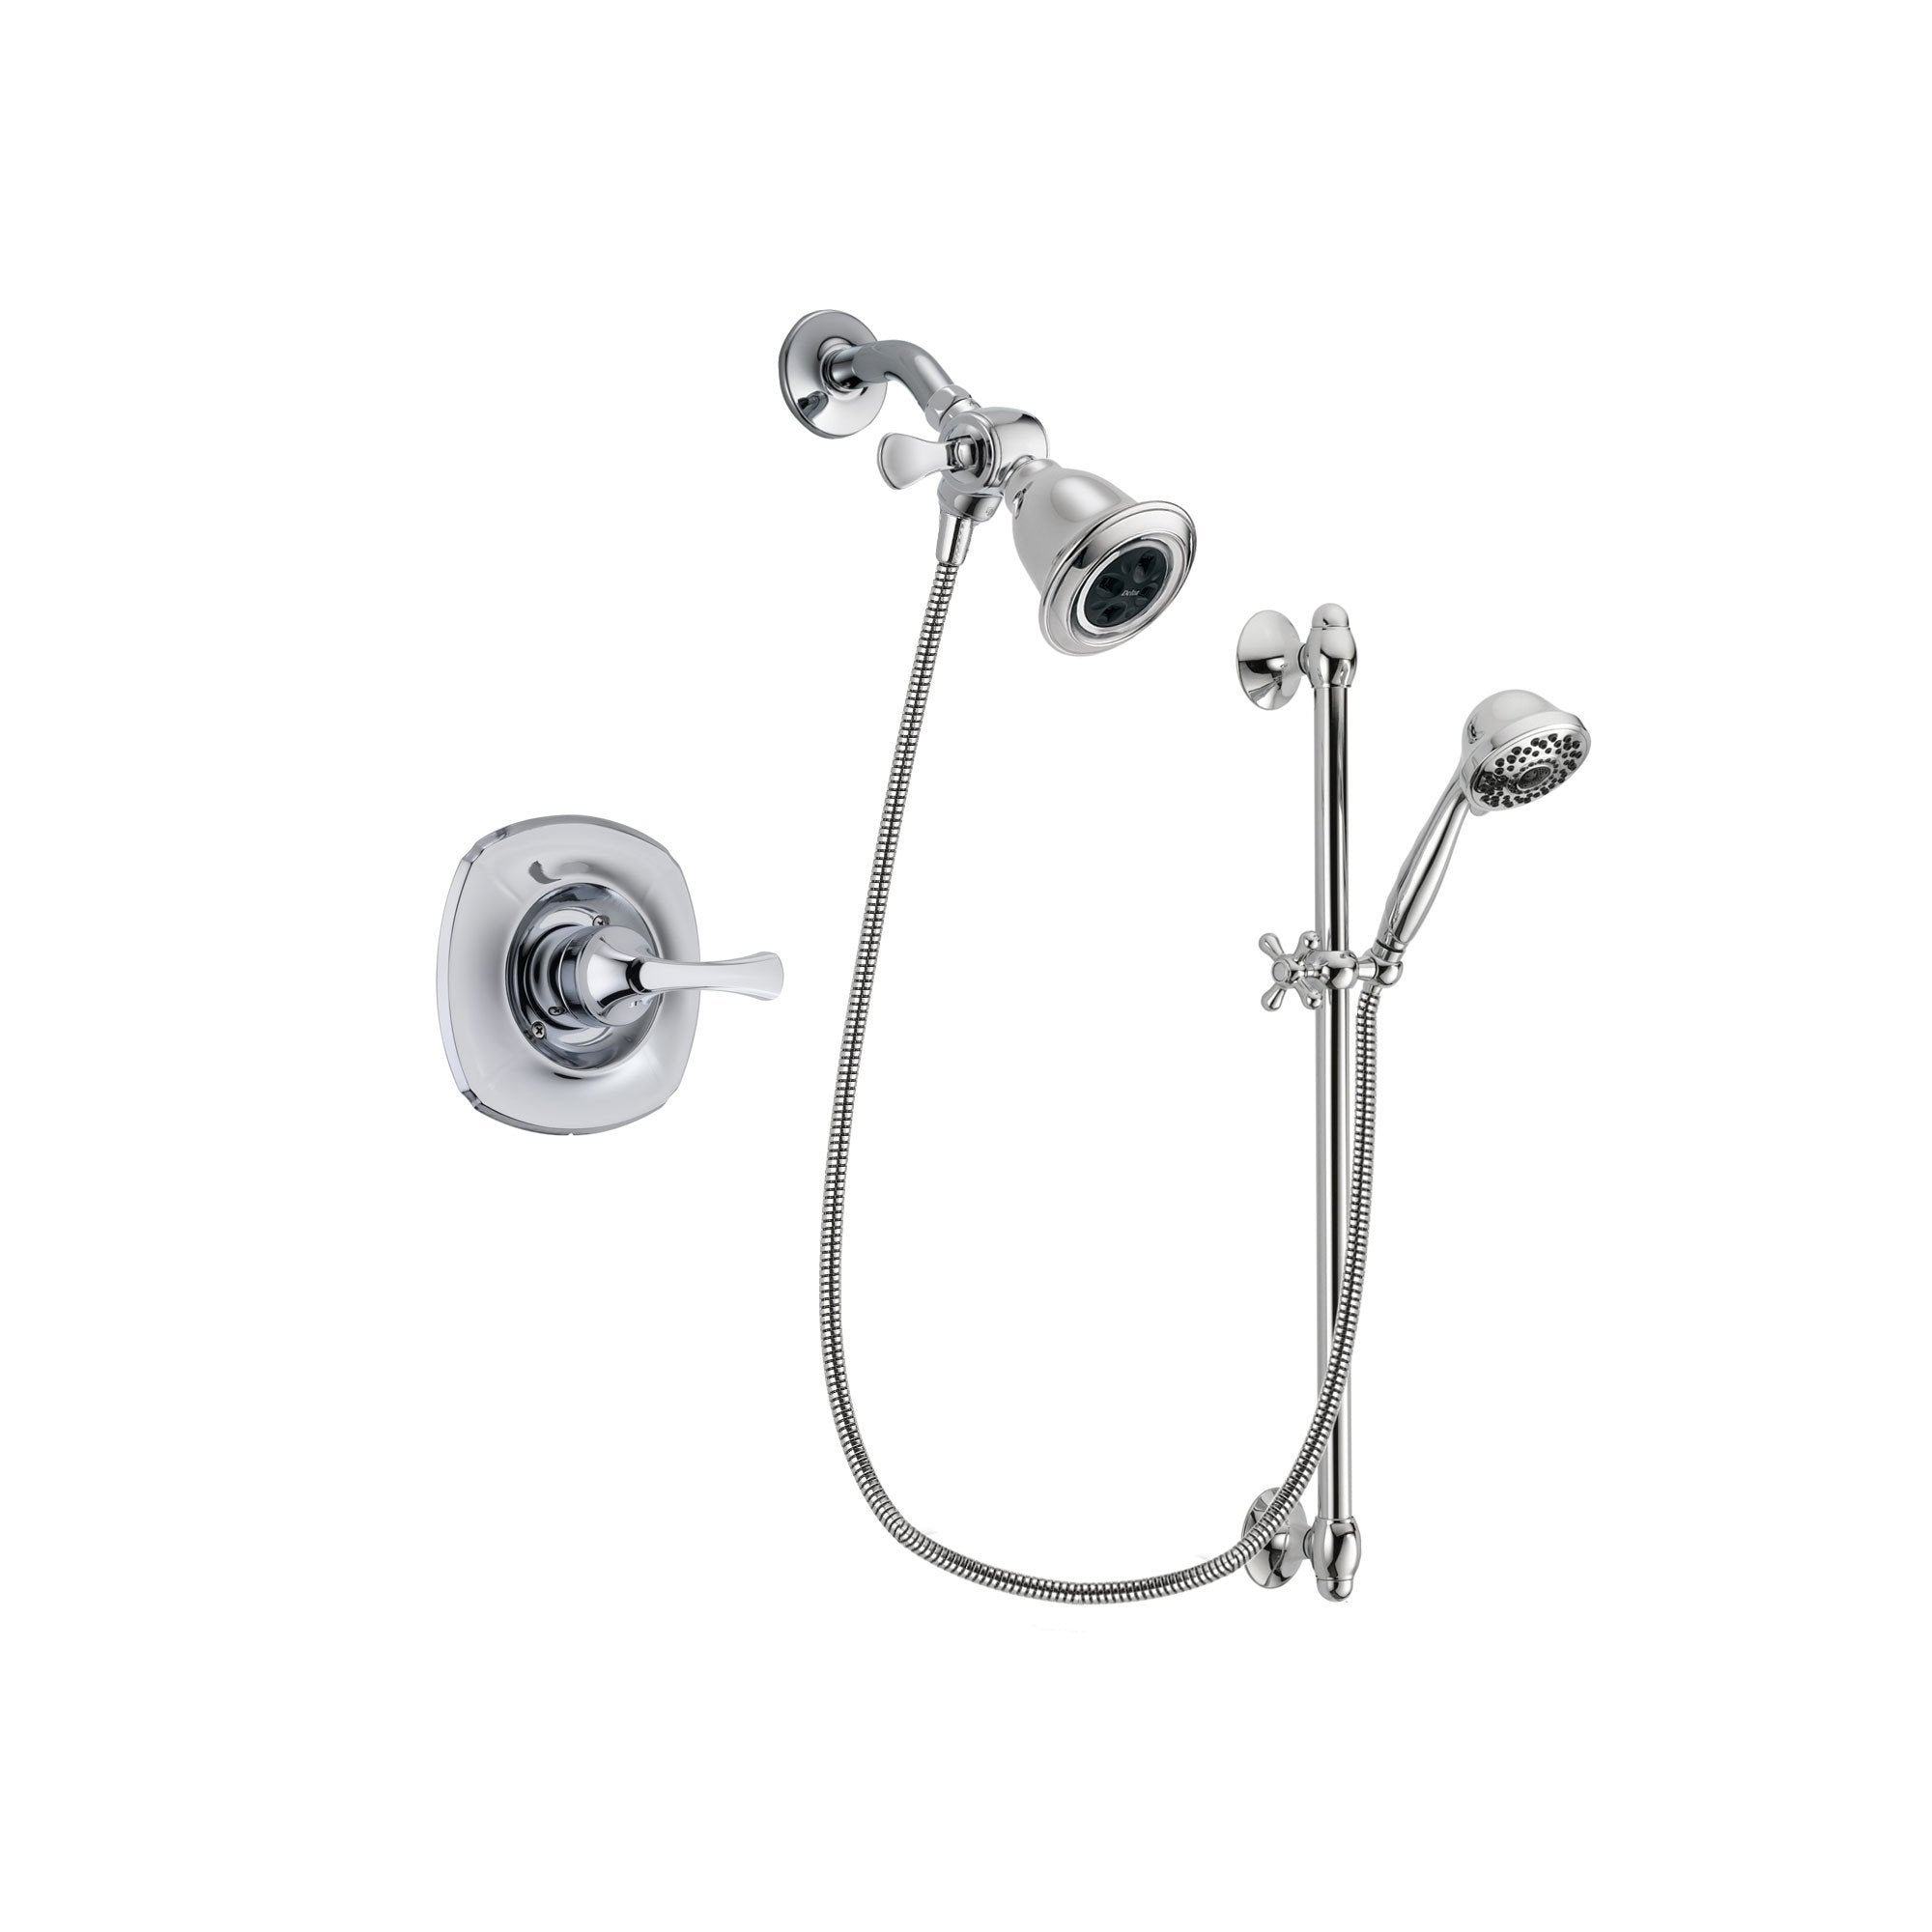 Delta Addison Chrome Shower Faucet System w/ Showerhead and Hand Shower DSP0612V